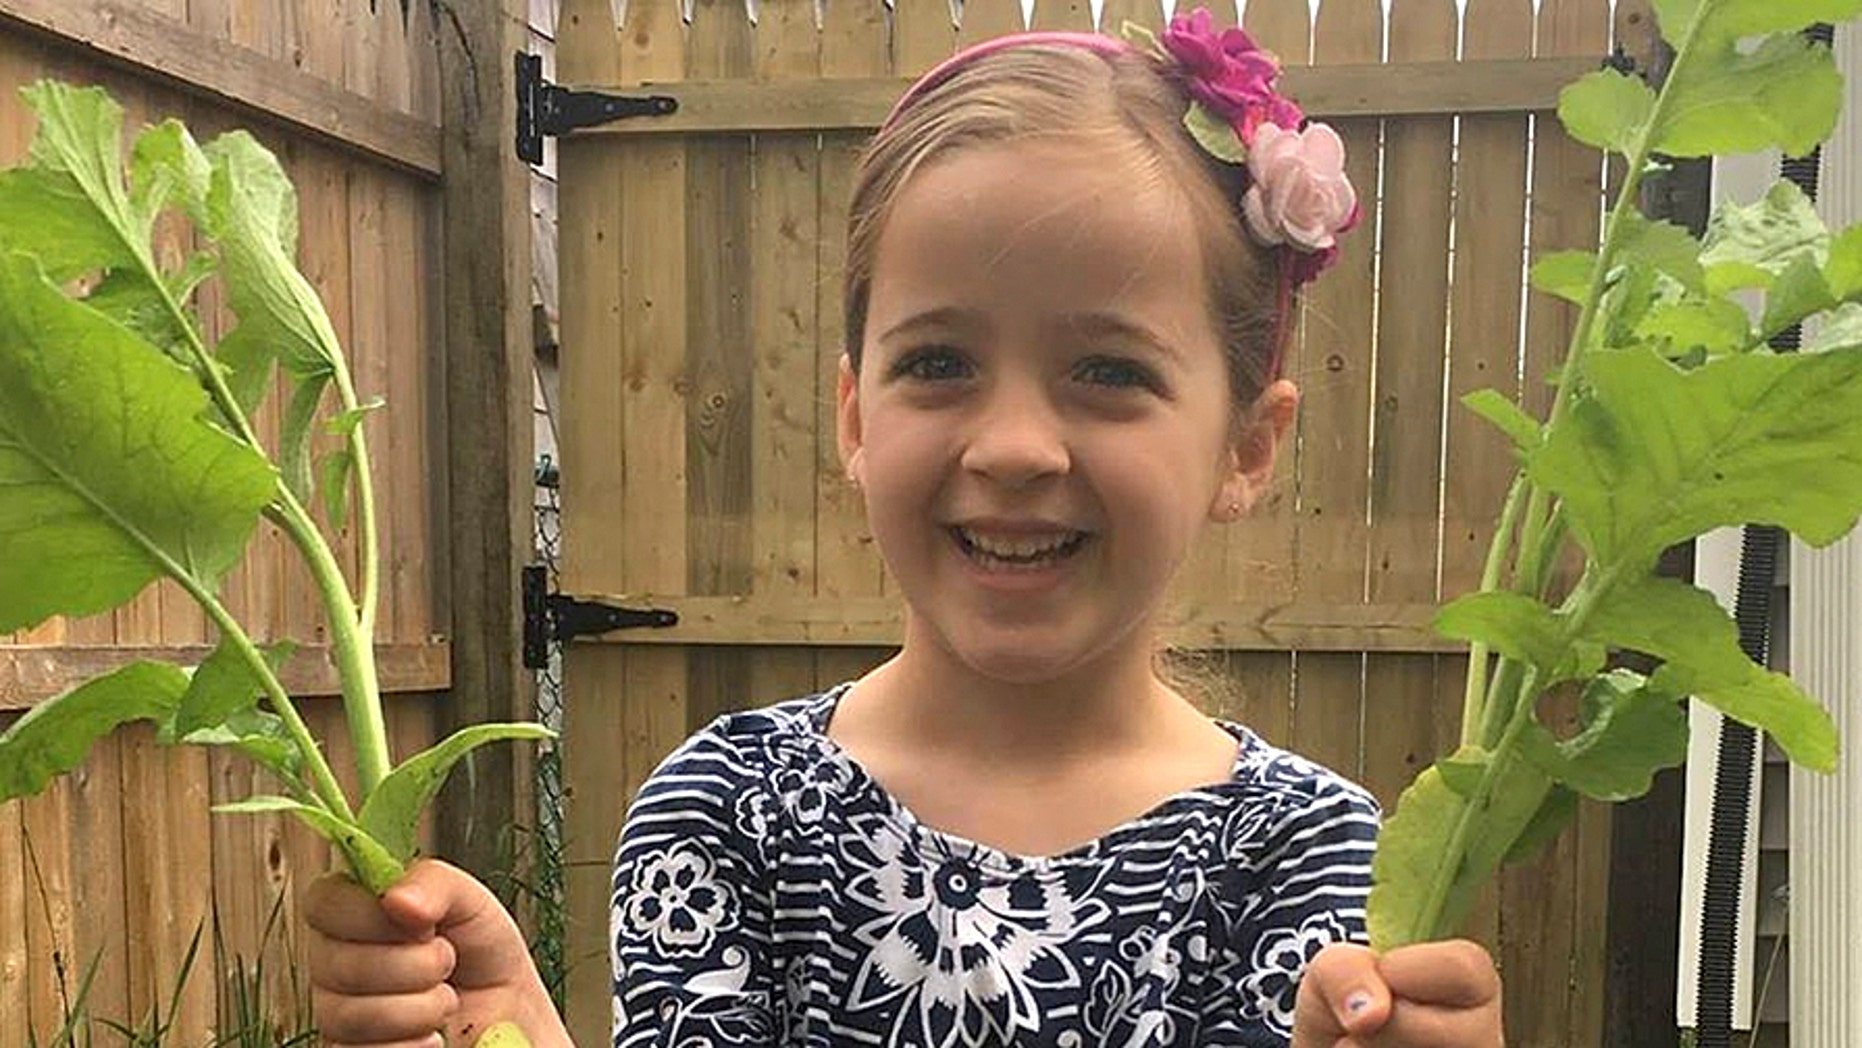 6-year old Emma Splan, from Connecticut, is one of two children who died over the weekend from the flu-related illnesses.